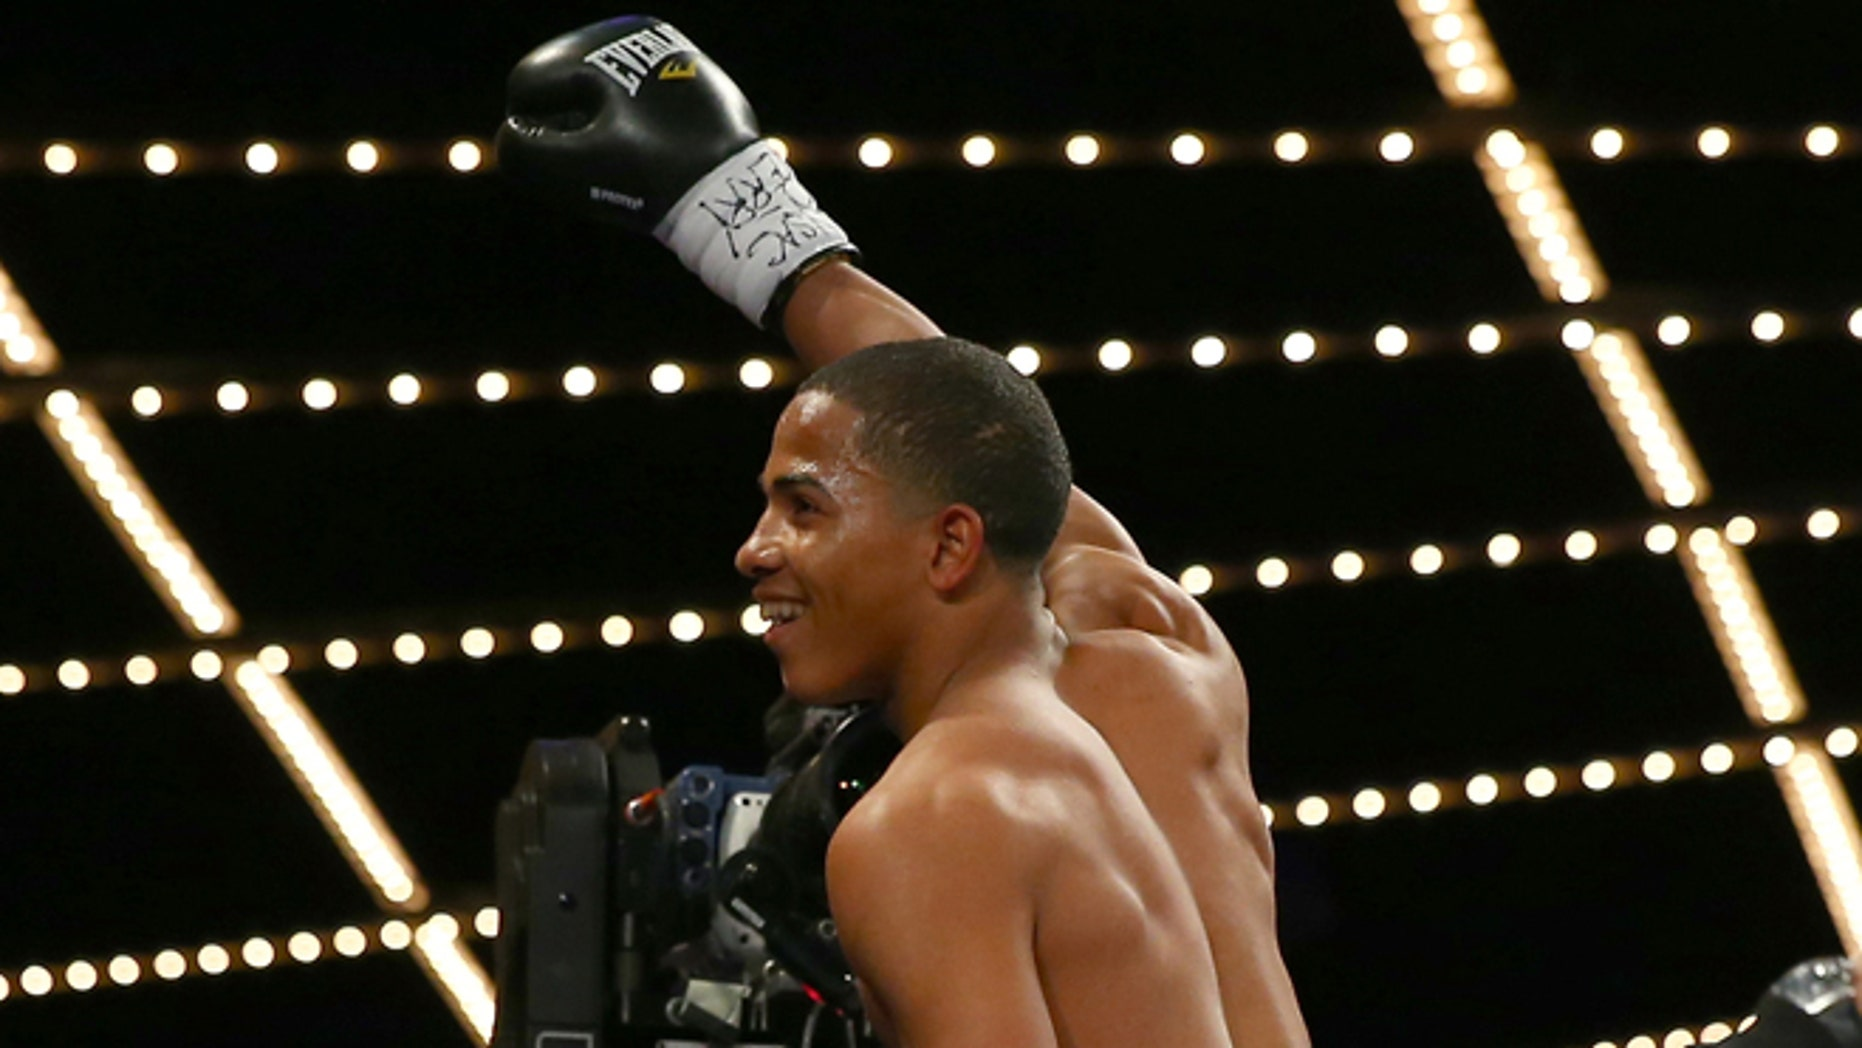 NEW YORK, NY - JANUARY 25:  Felix Verdejo celebrates his knockout of Lauro Alcantar in the first round at Madison Square Garden on January 25, 2014 in New York City.  (Photo by Elsa/Getty Images)